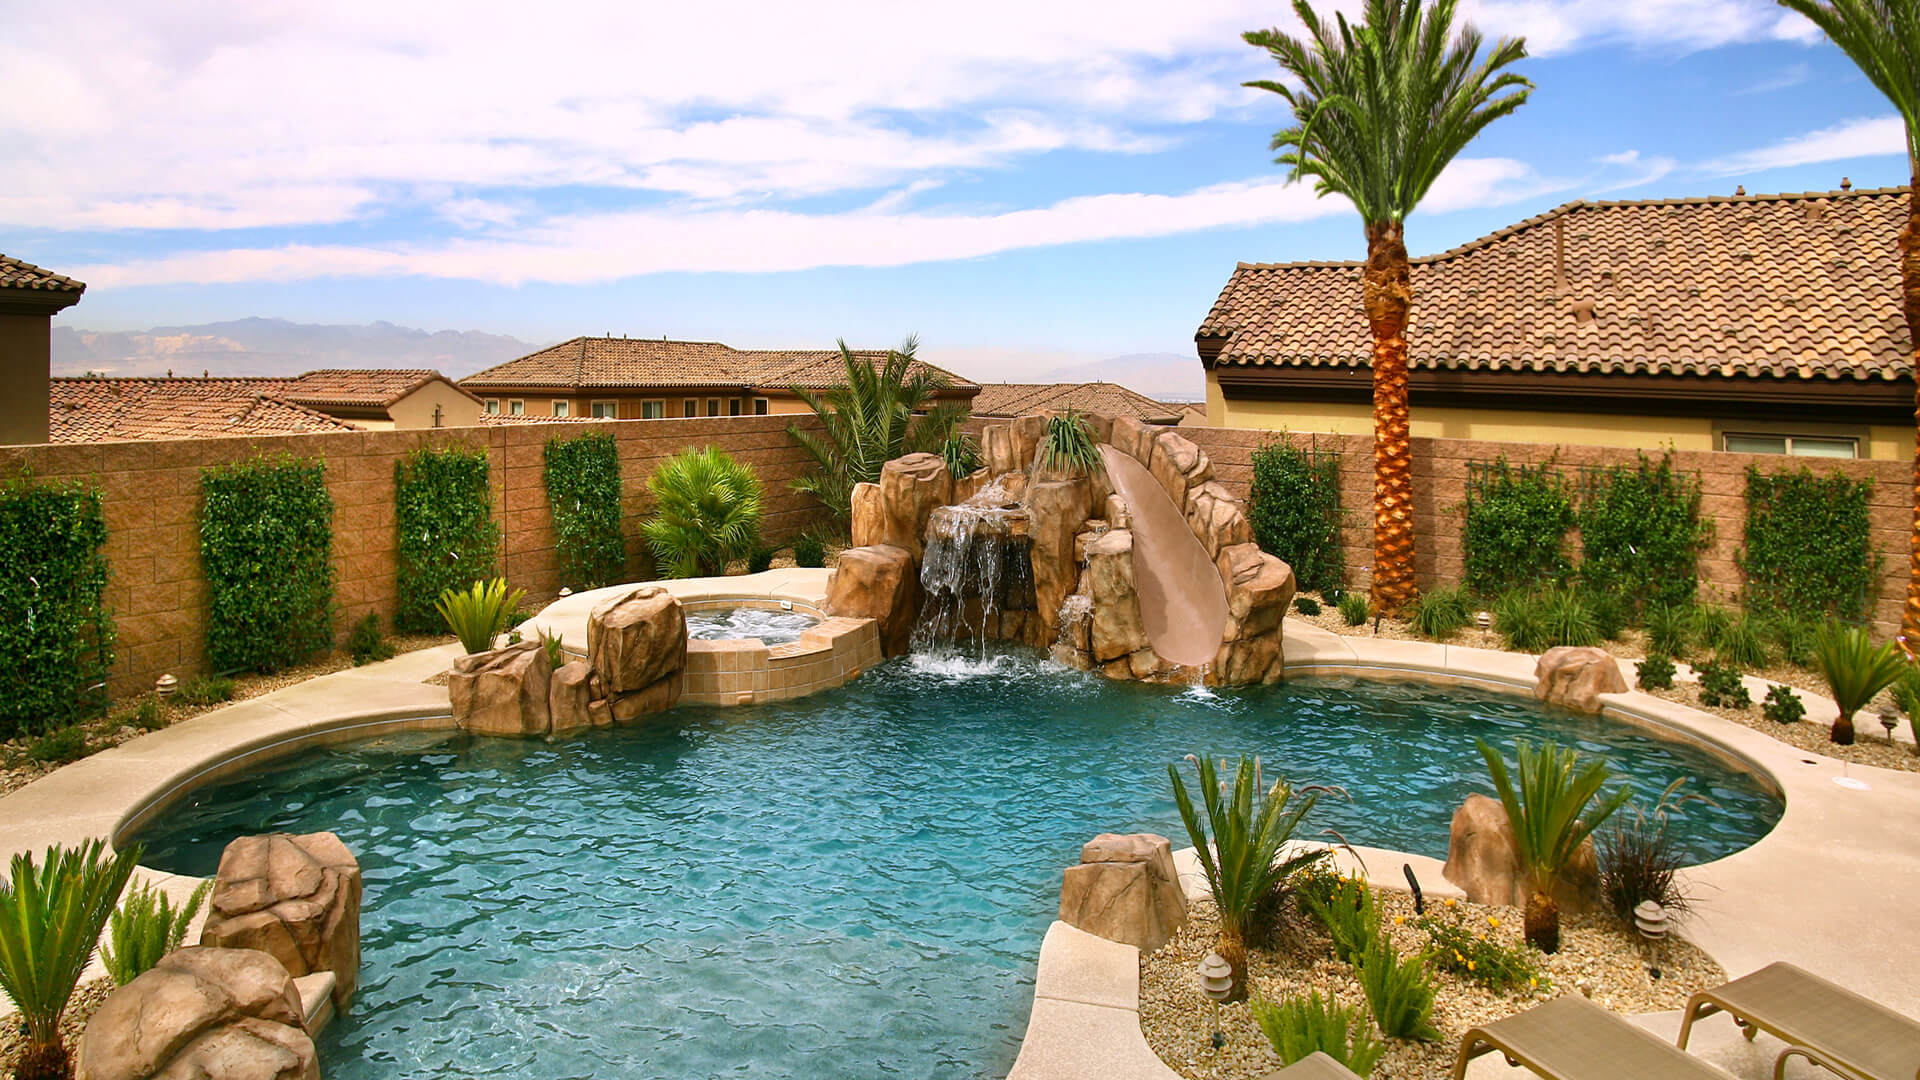 Custom Rockscape Swimming Pool Design - Clarity Pool Service of Las Vegas, Nevada